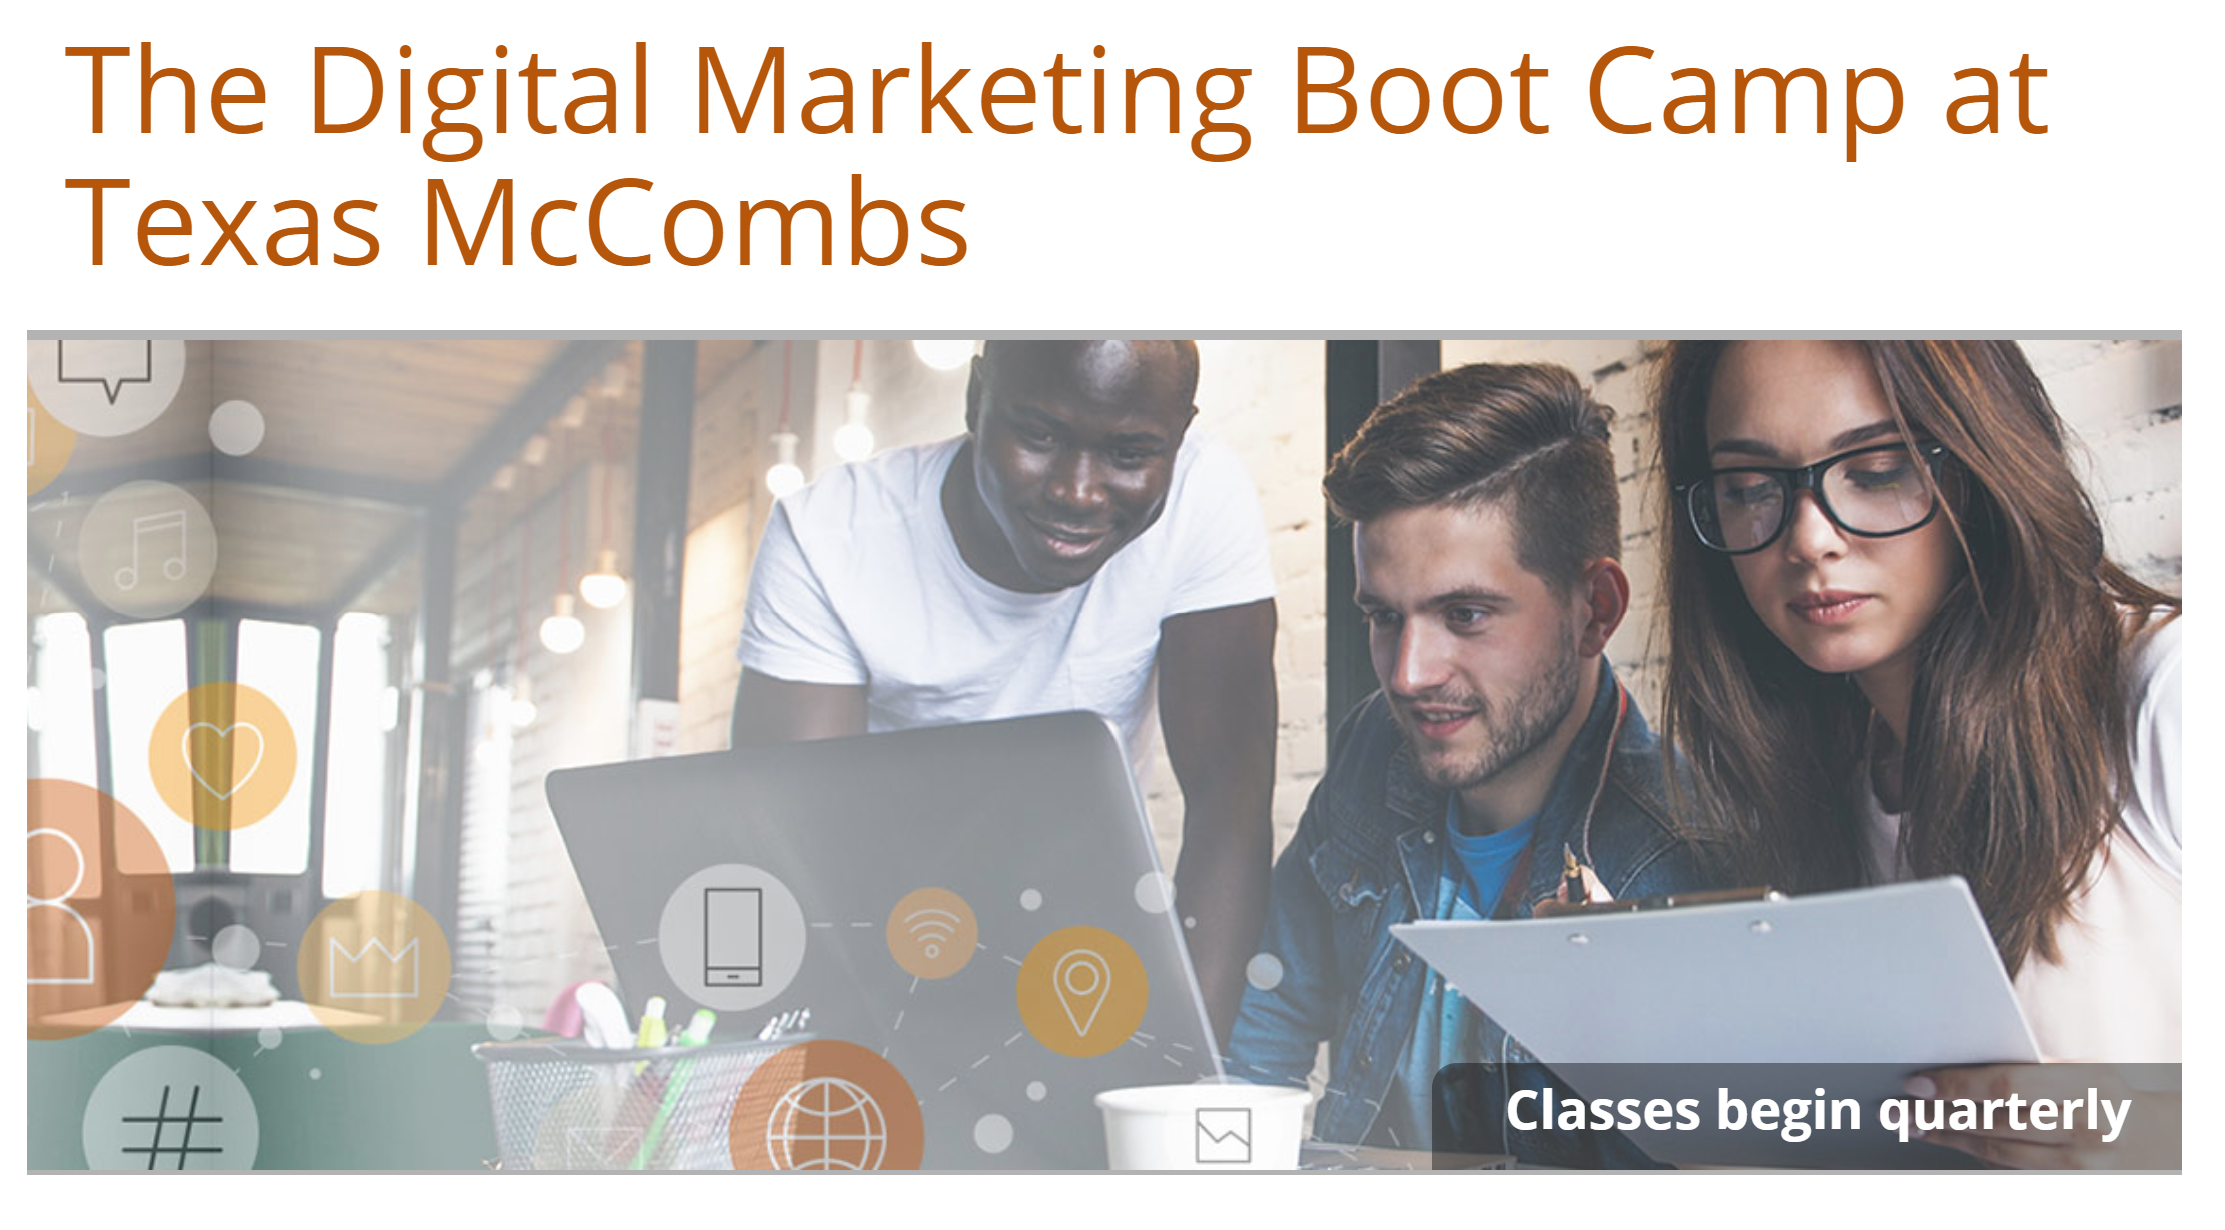 digital-marketing-boot-camp-texas-mccombs for Austintatious Design Co